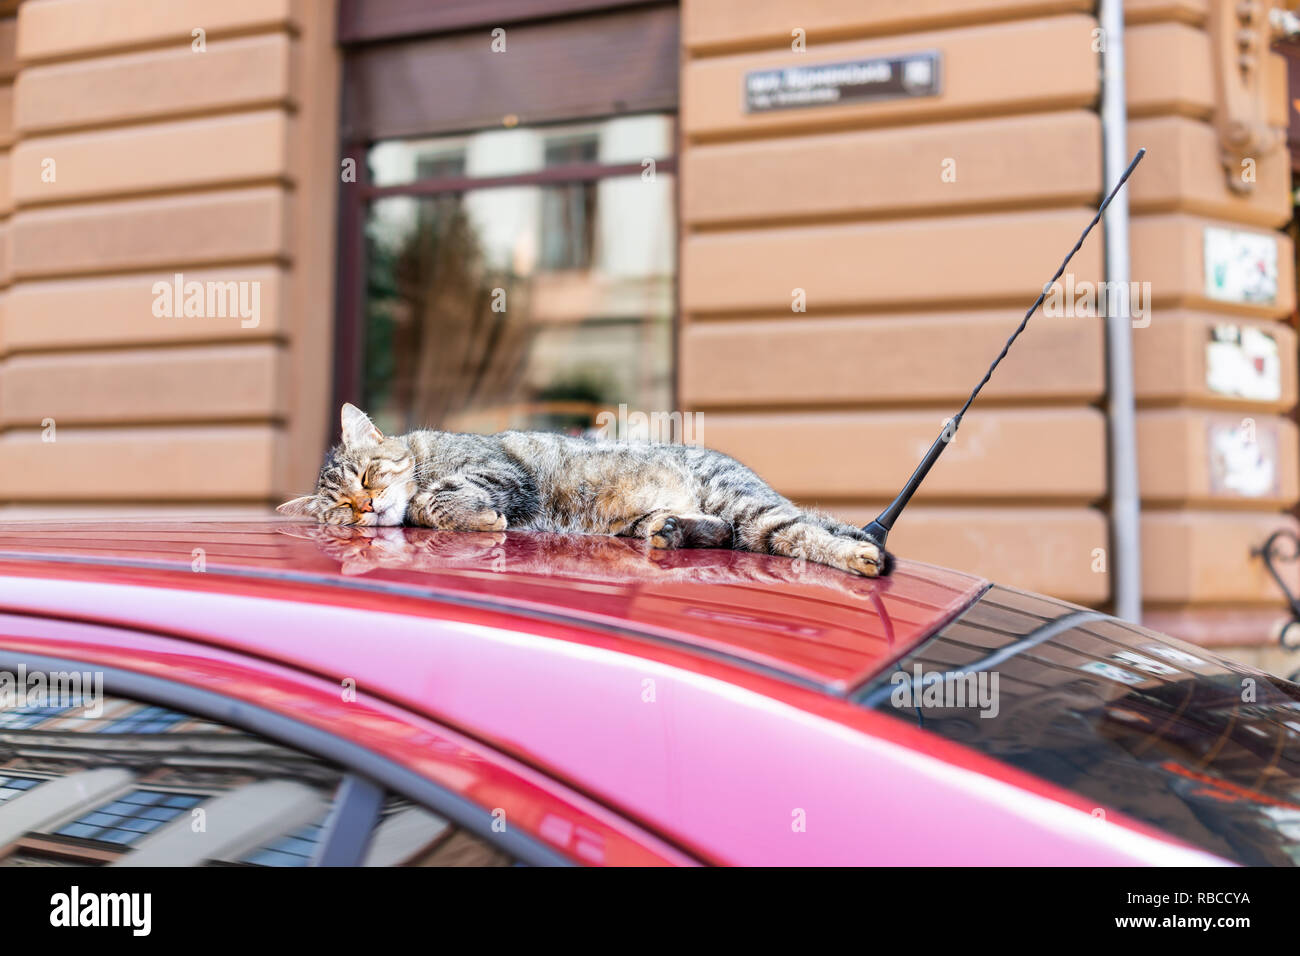 Cute tabby cat sleeping resting on top of red car roof on street in Lviv or Lvov, Ukraine old town city and nobody - Stock Image